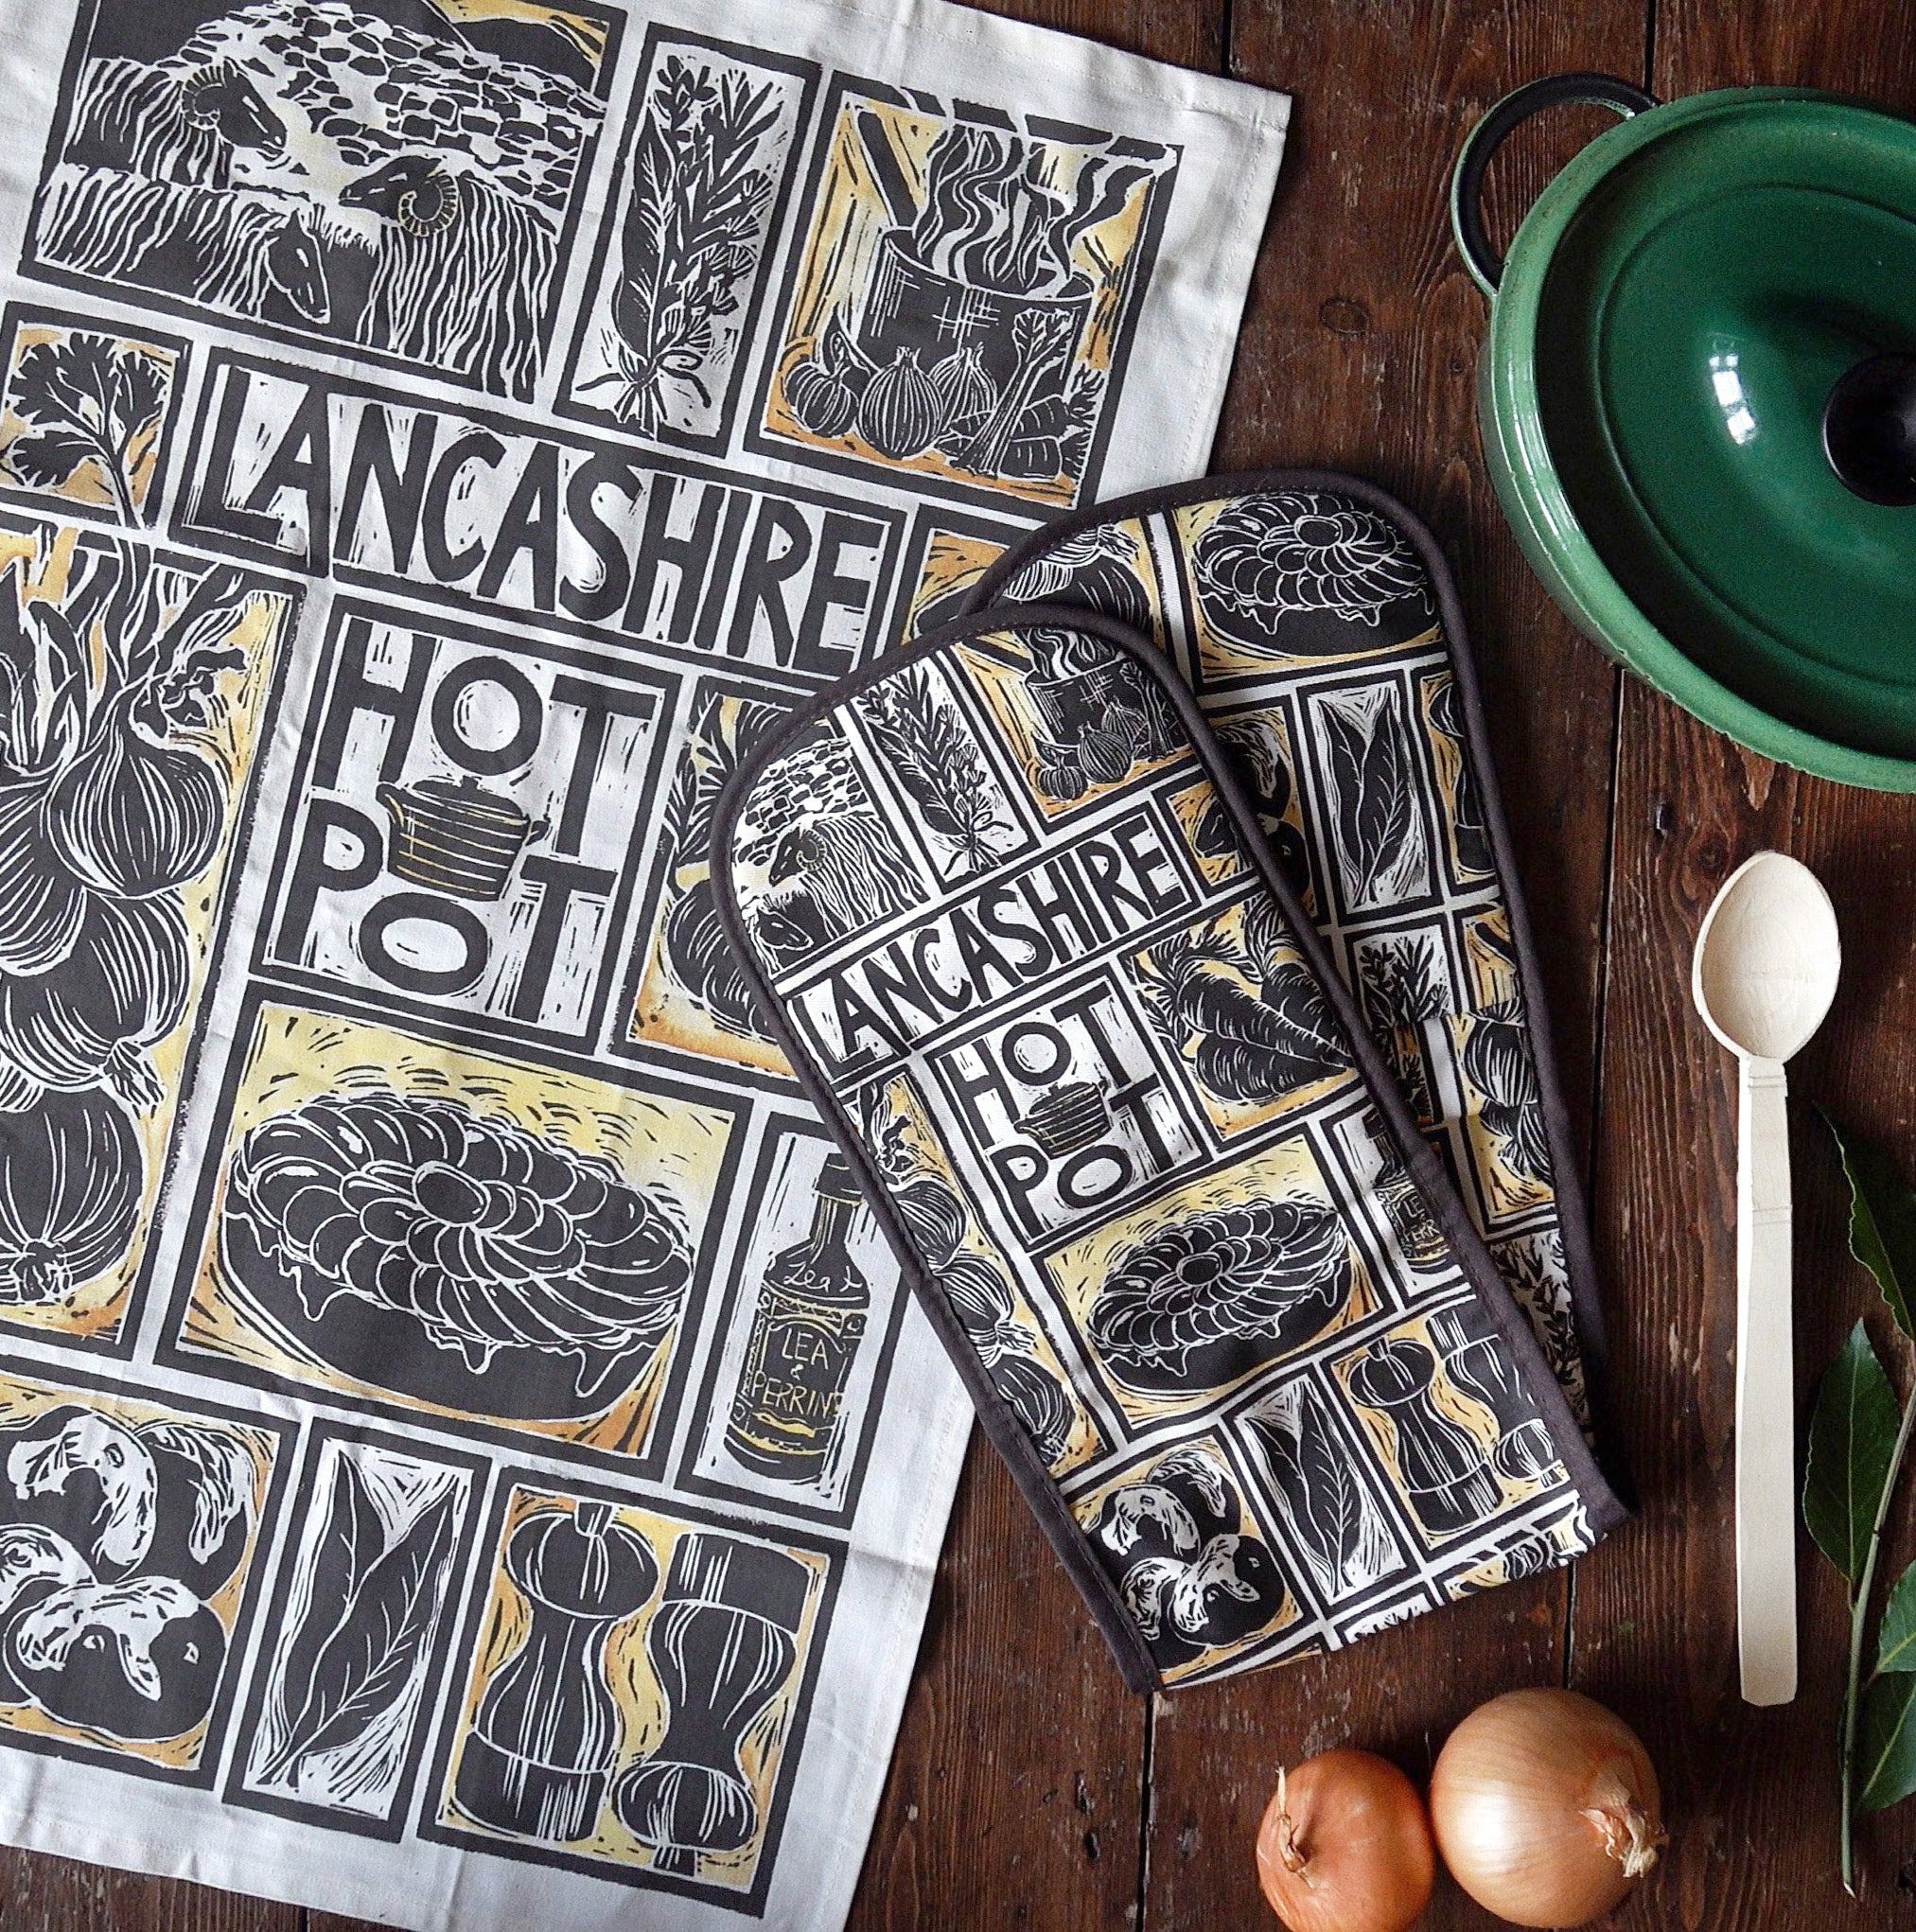 Lancashire Hot Pot Gift Set Tea Towel Double Oven Glove And Greetin Kate Guy Prints